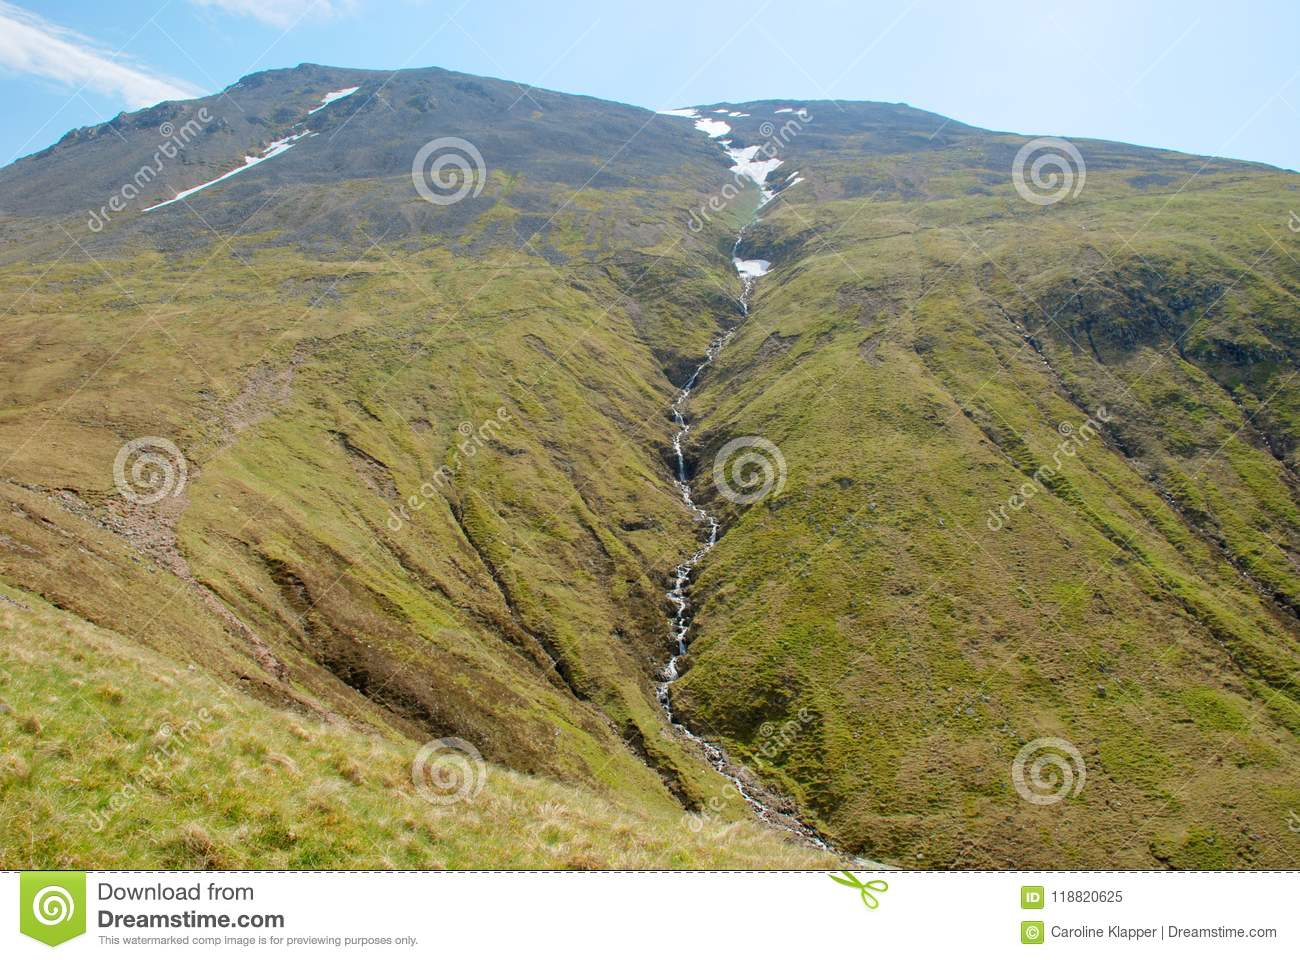 Ben Nevis Highest Peak in het UK